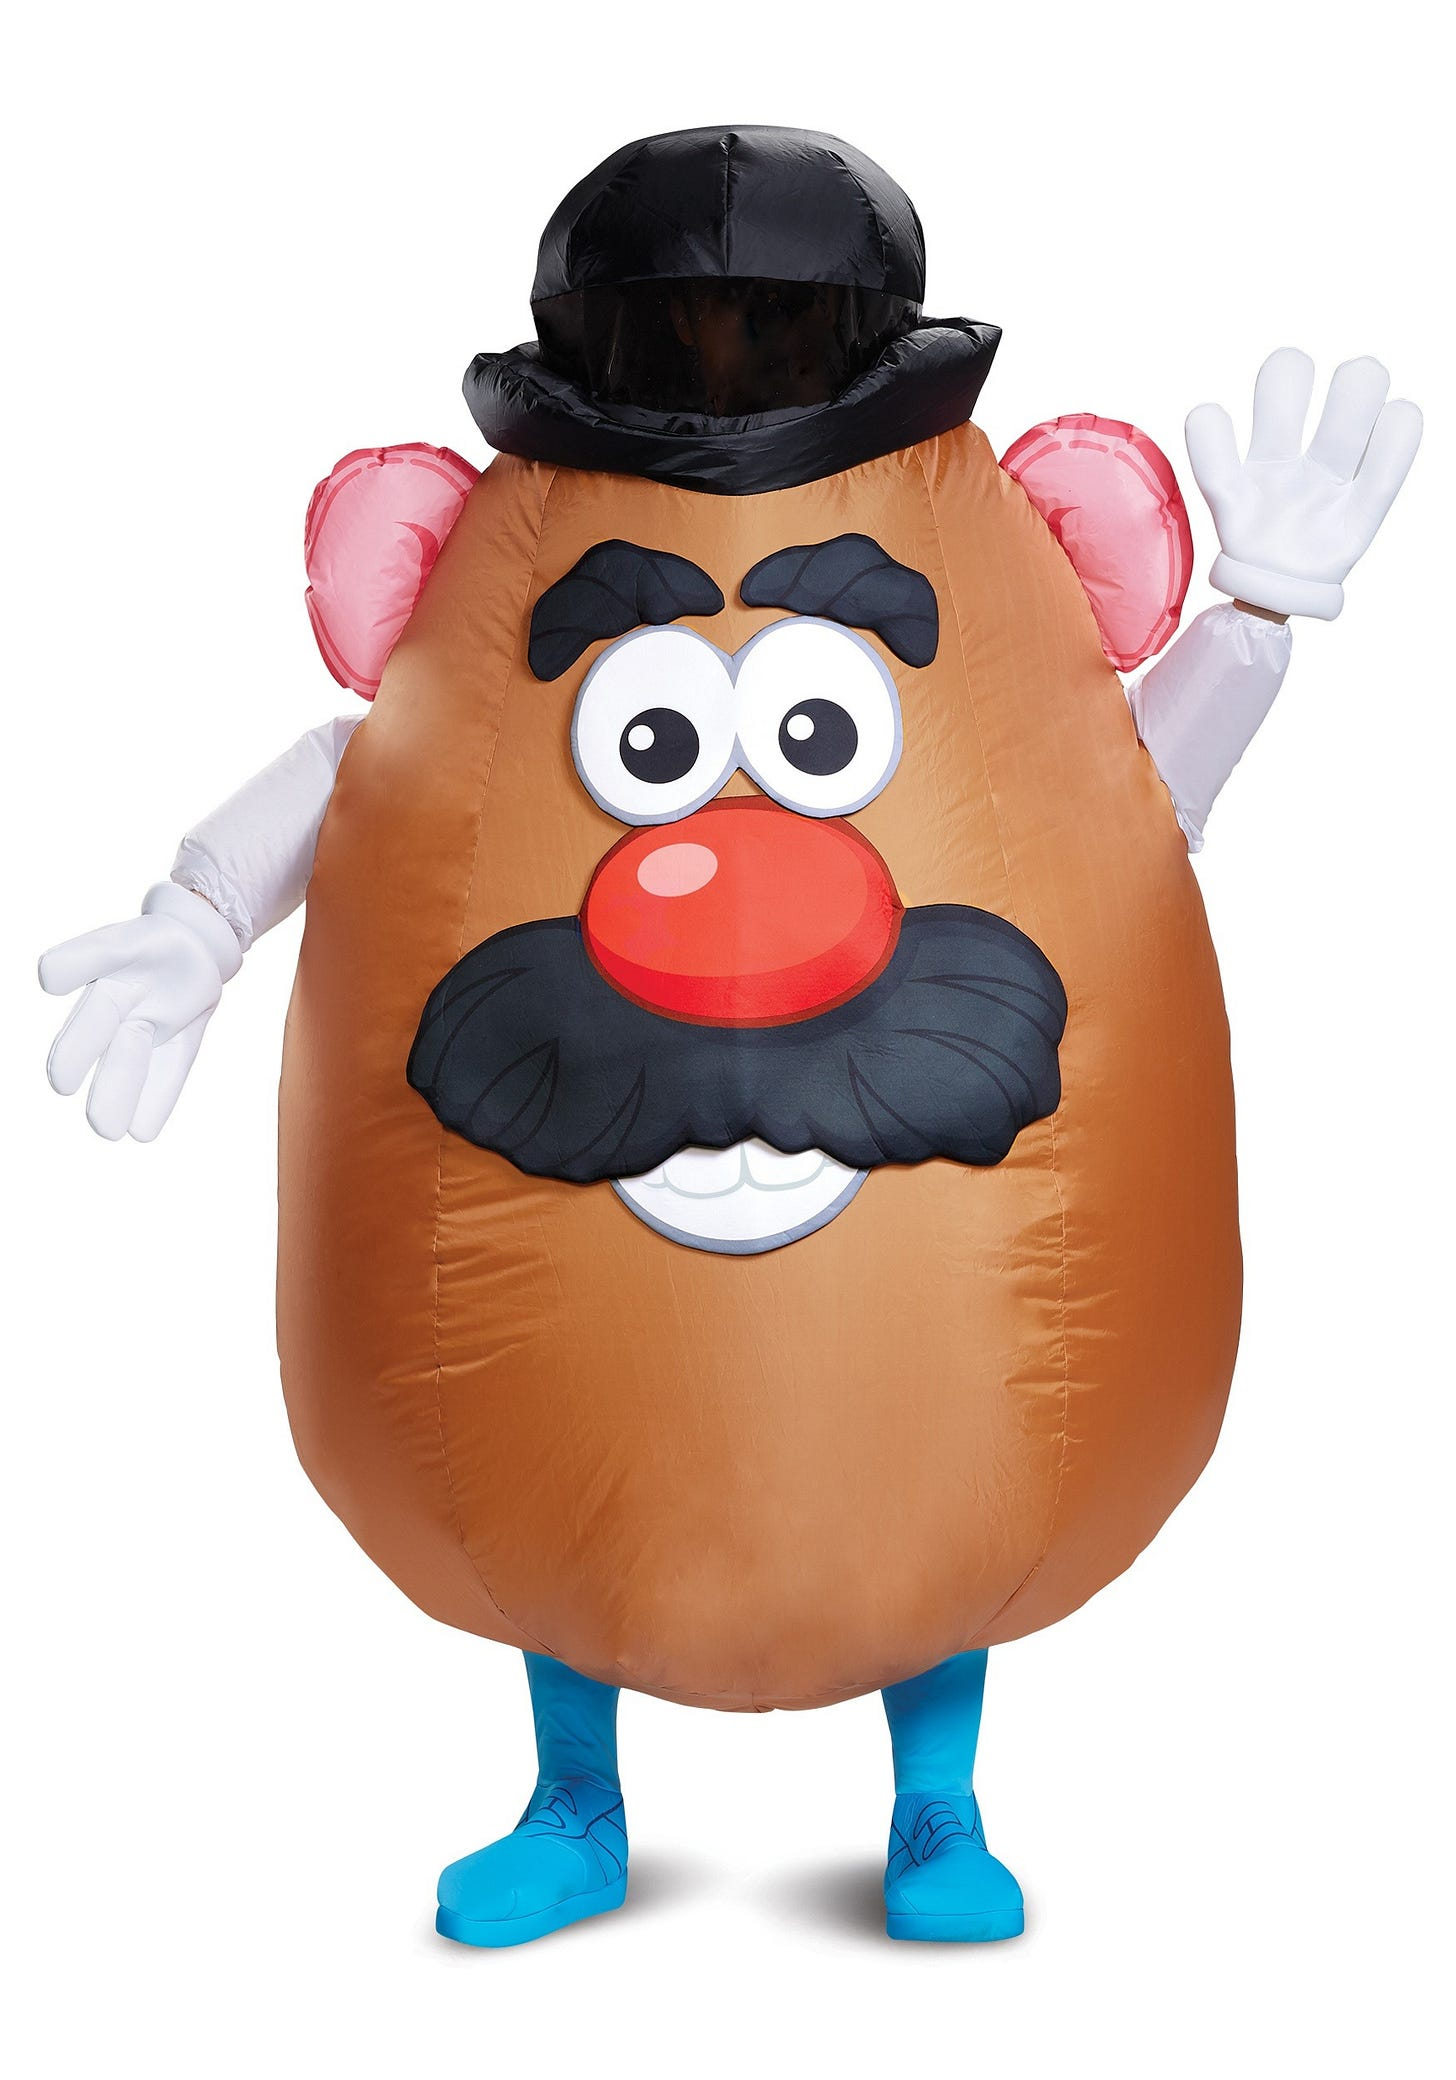 Mr. Potato Head Costume for Adults Inflatable